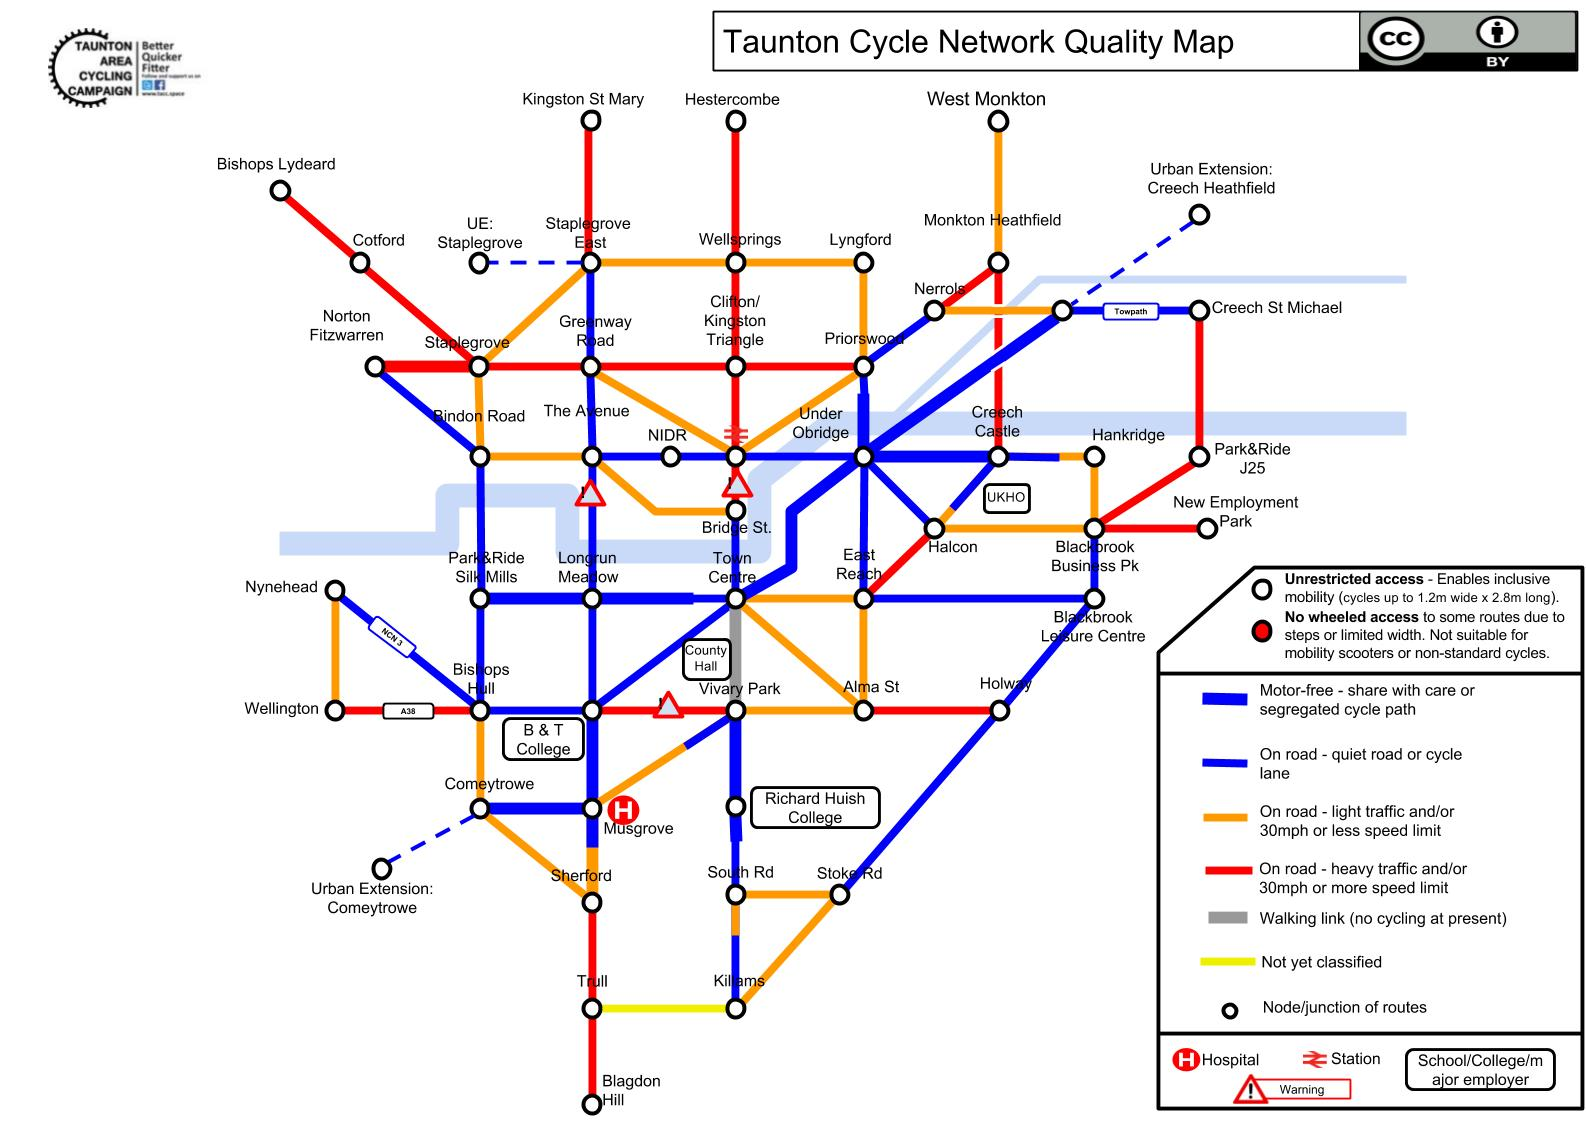 TACC Taunton Cycle Network Quality Map v5